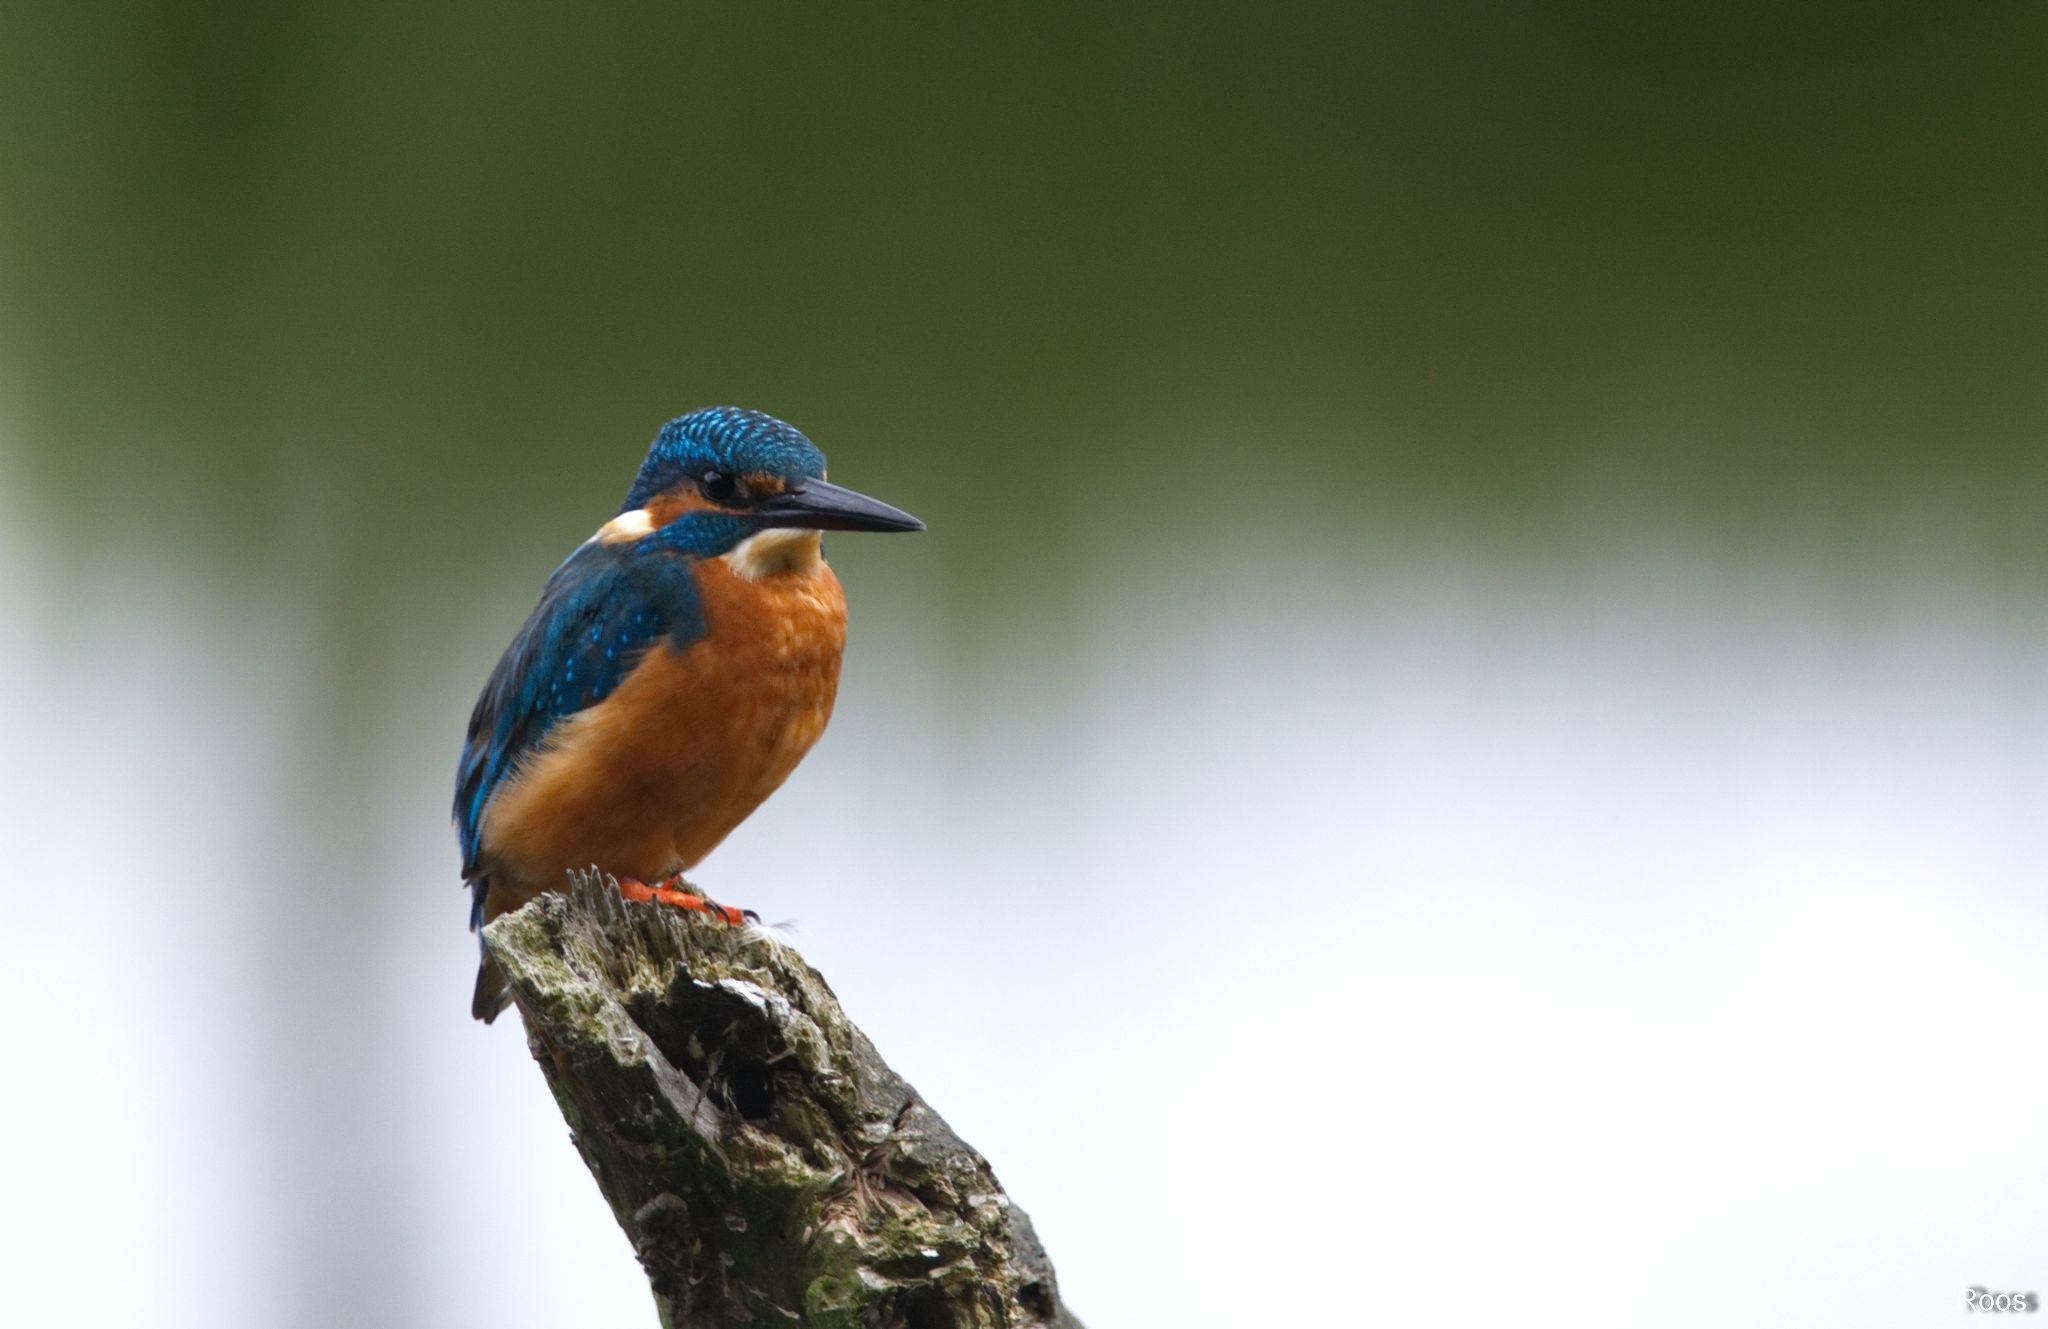 Kingfisher by roostamerus